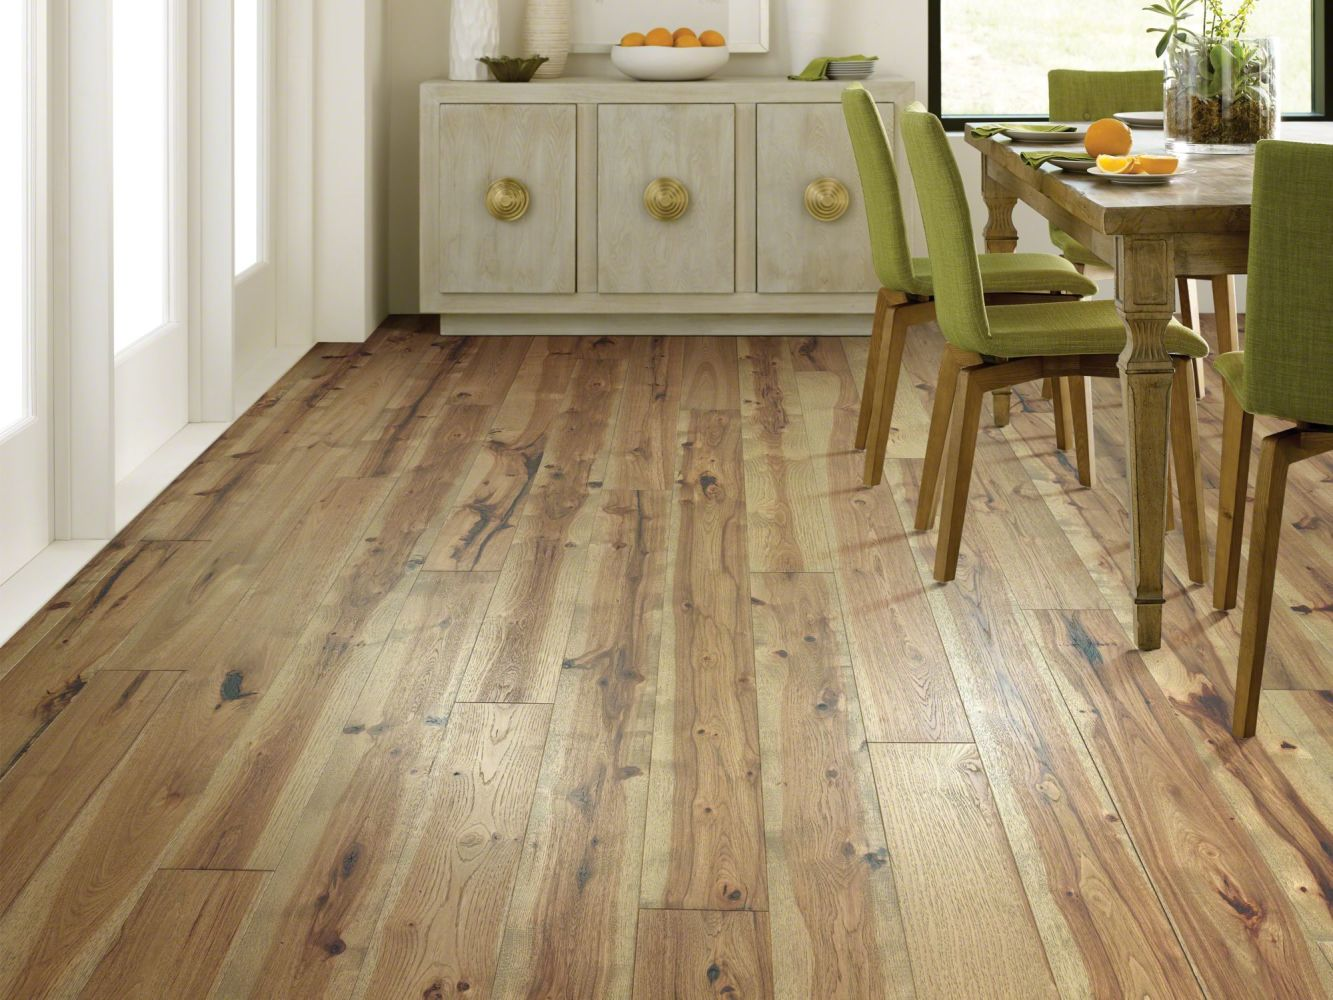 Shaw Floors Repel Hardwood Inspirations Hickory Radiance 07036_221SA